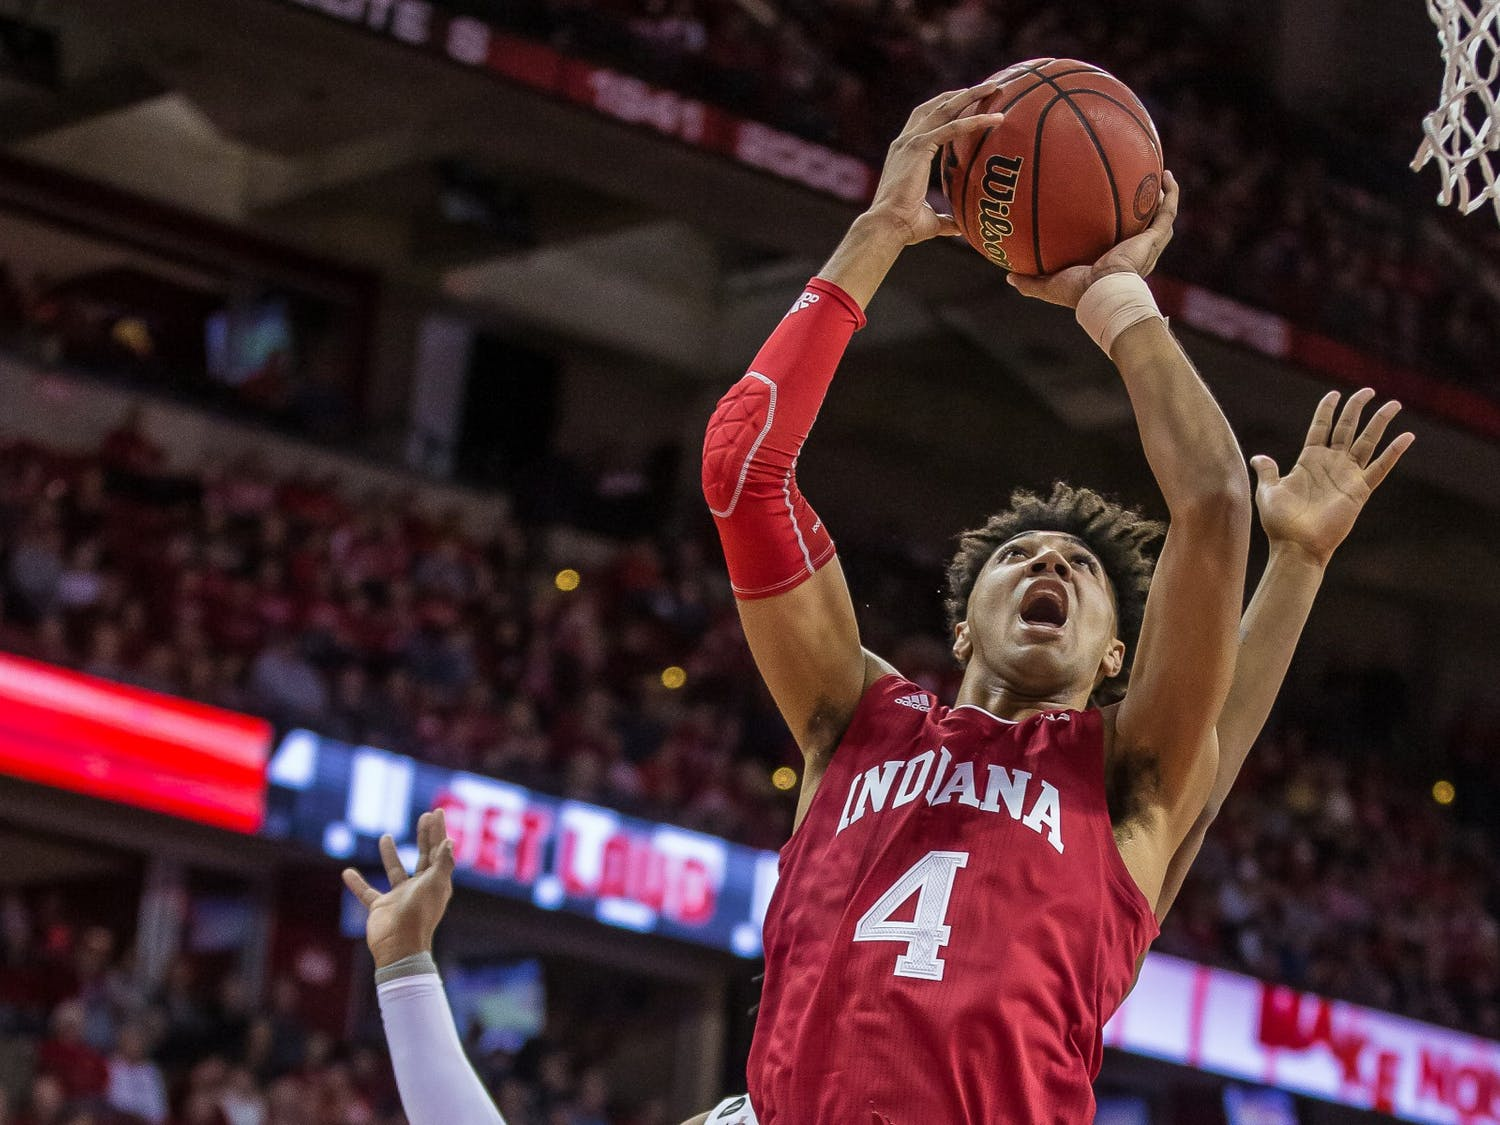 Trayce Jackson-Davis (above) leads the Hoosiers in scoring this season. He changed his number from #4 to #23 this season.